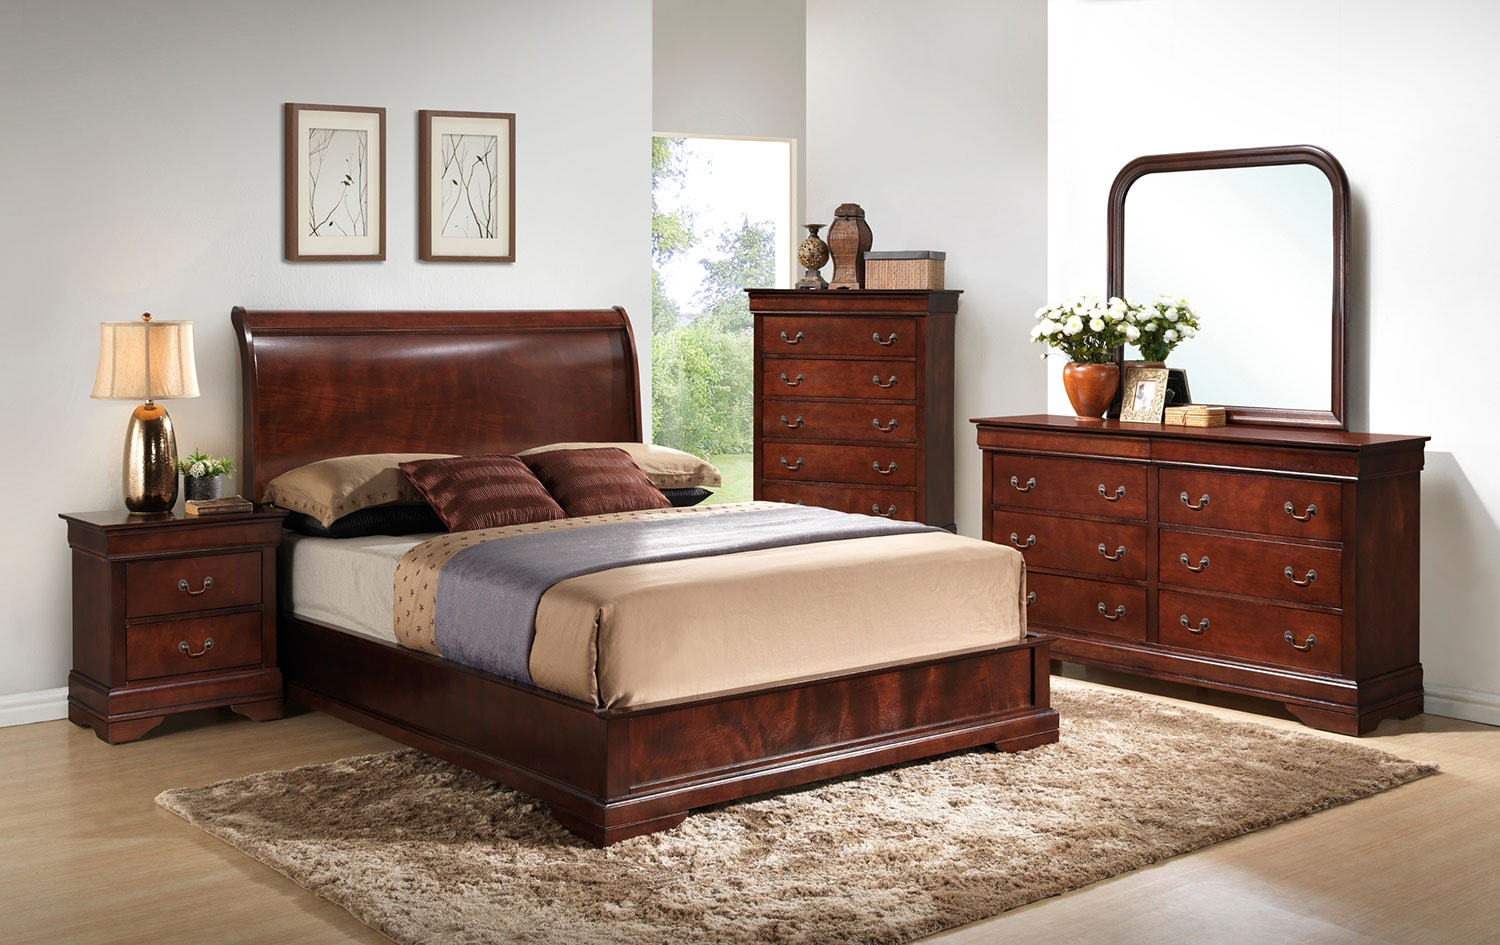 Claire 4-Piece Queen Bedroom Set - Brown Cherry